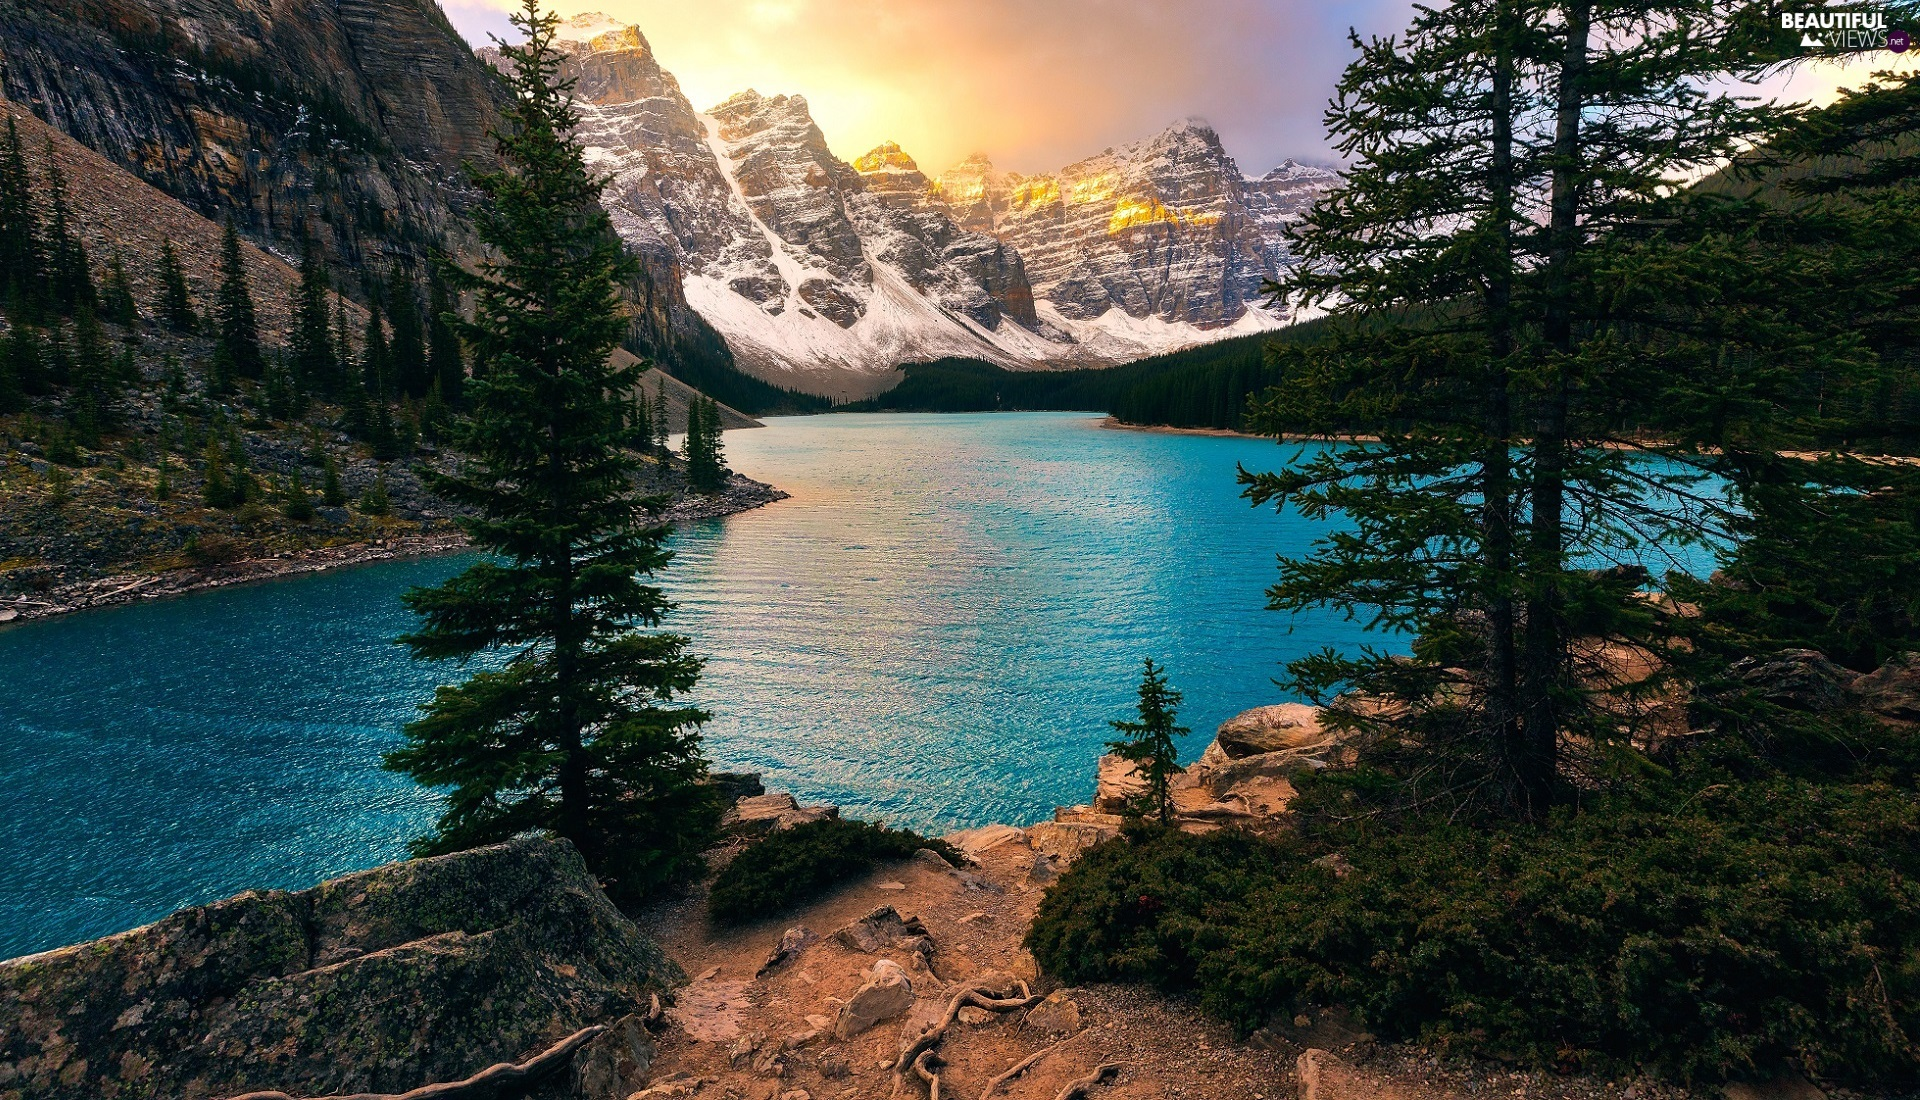 forest, Alberta, Lake Moraine, viewes, Valley of the Ten Peaks, Canada, Banff National Park, Mountains, trees, Valley of the Ten Peaks